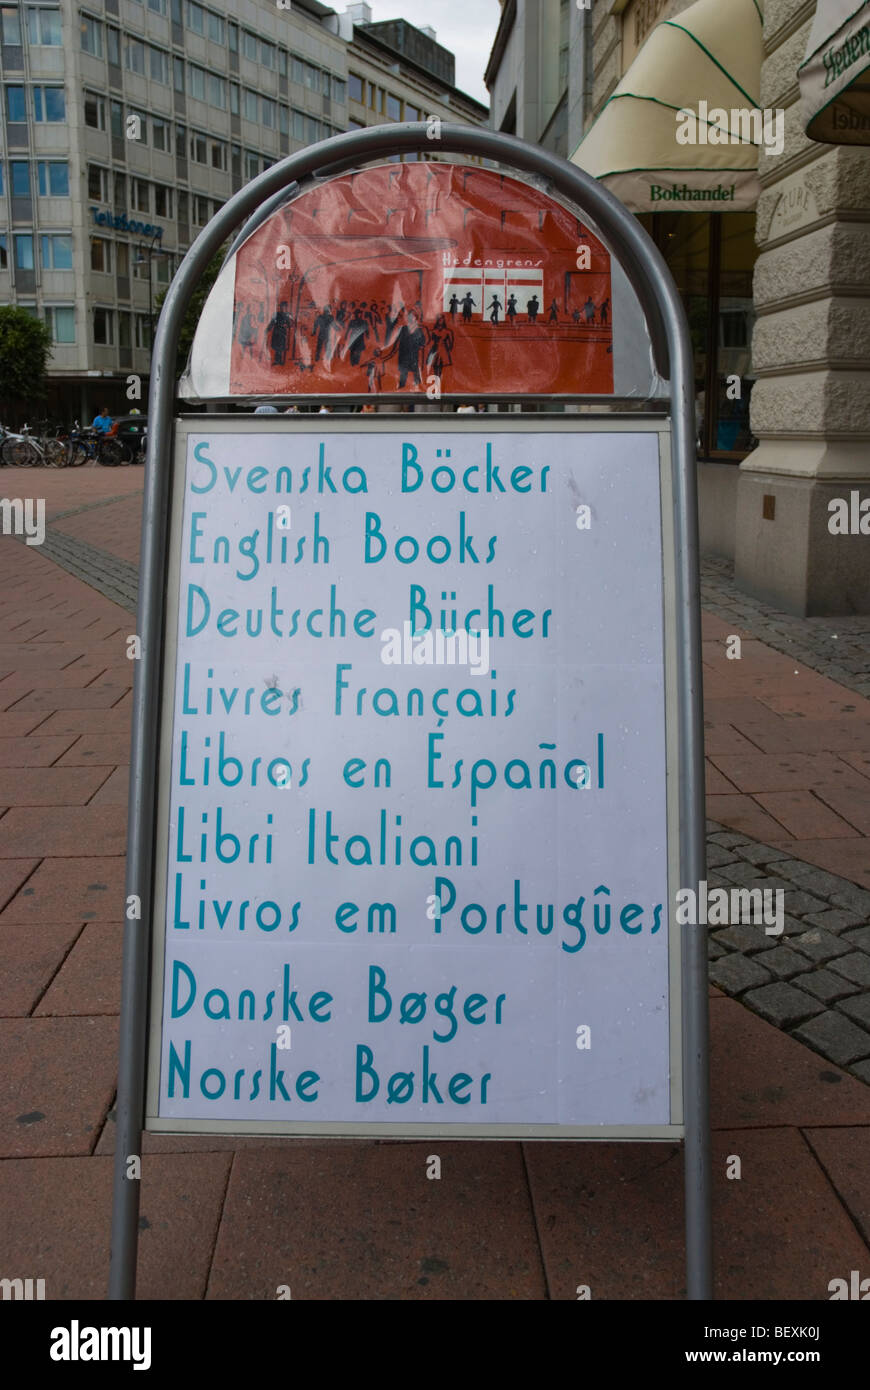 Sign advertising books in many languages at Stureplan square in Stockholm Sweden Europe - Stock Image